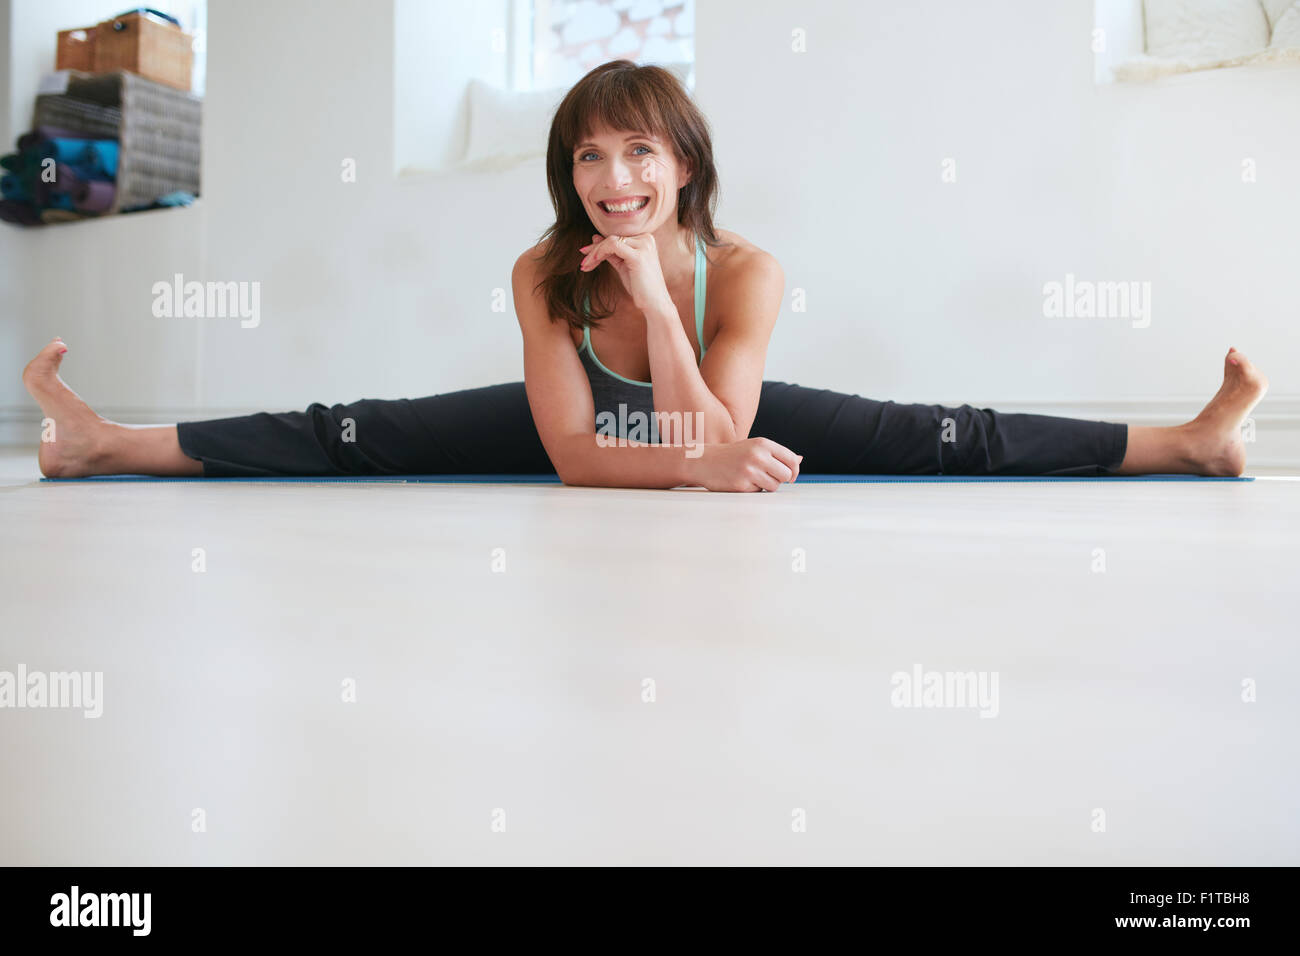 Happy woman doing wide angle seated forward bend yoga at gym. Fitness female practicing Upavistha Konasana yoga. - Stock Image